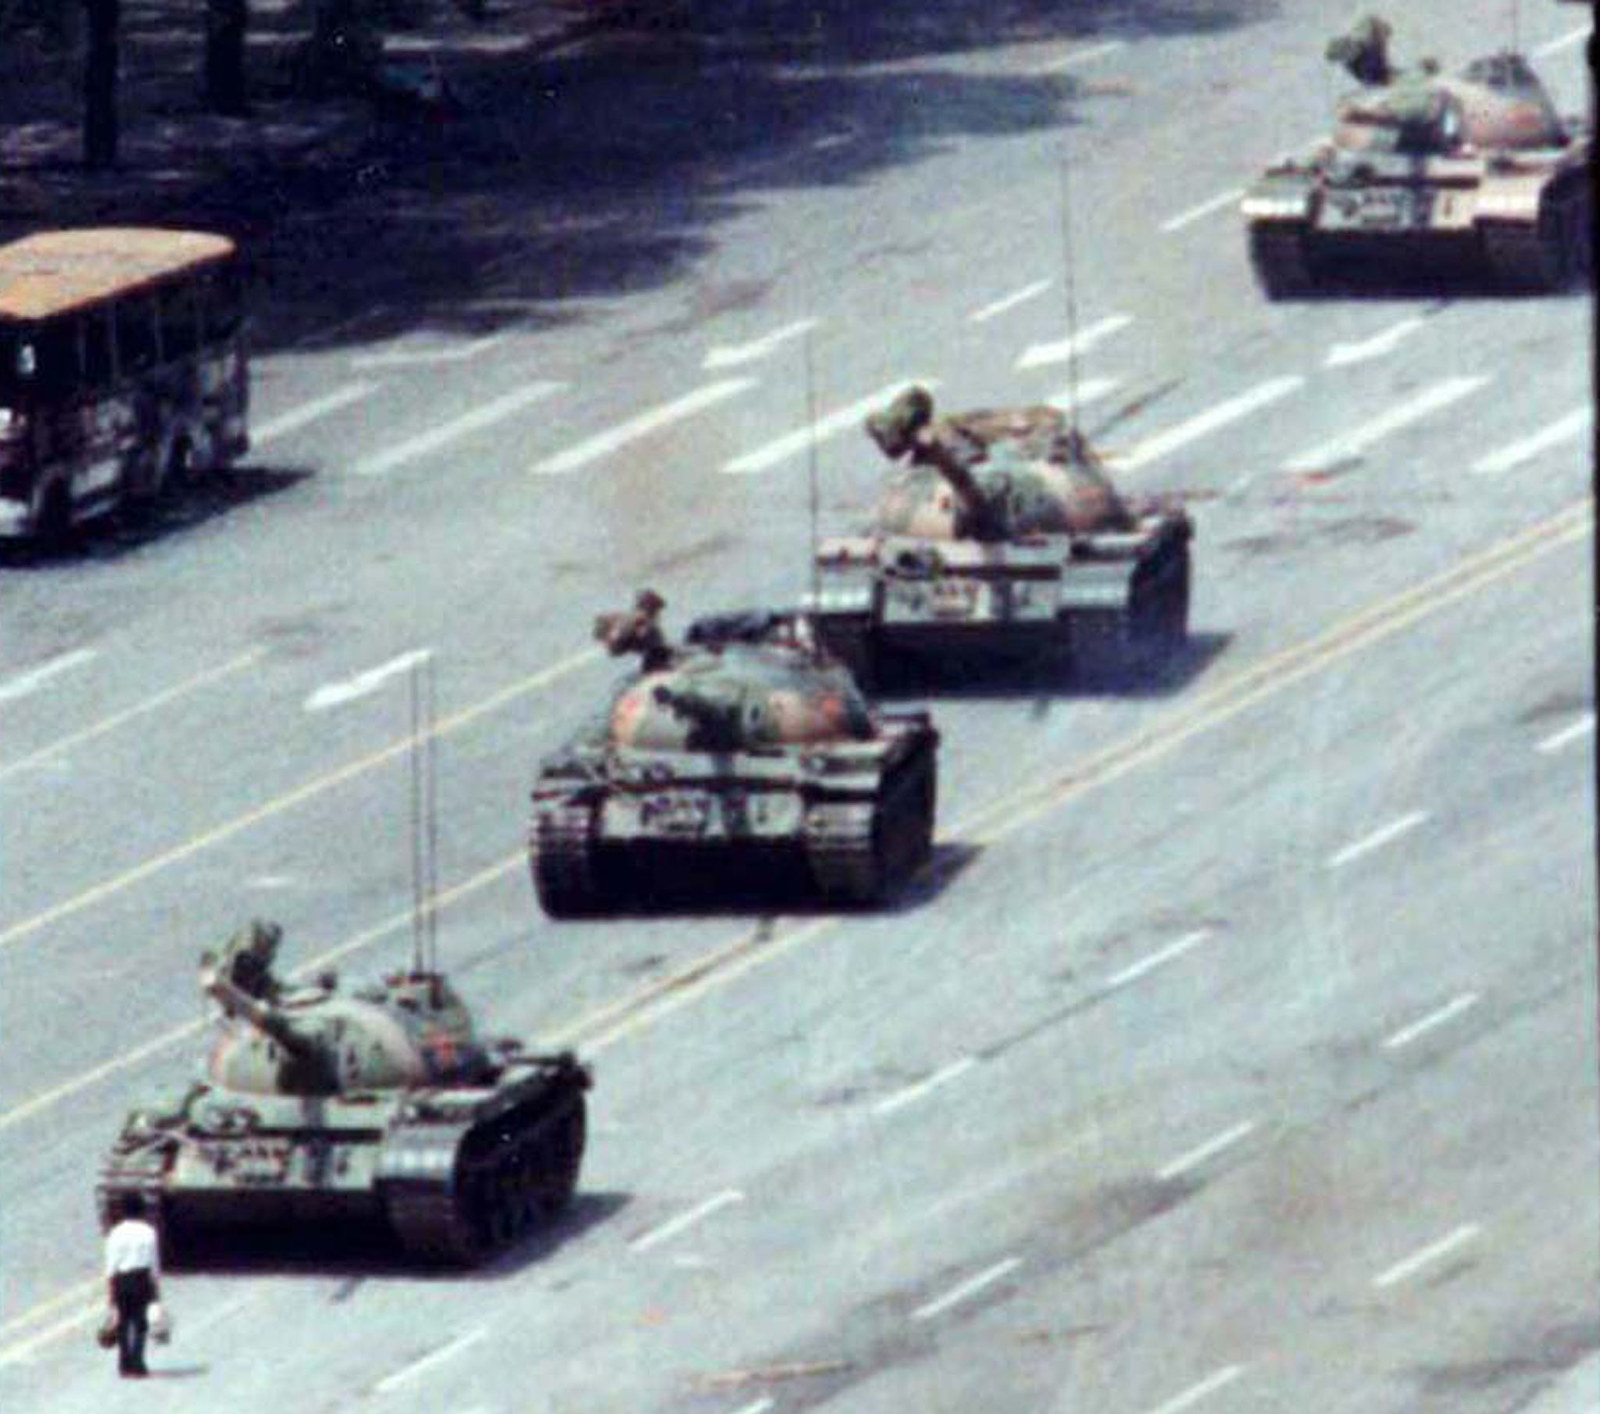 Zhou was one of the student leaders of the pro-democracy protests at Beijing's Tiananmen Square in 1989.